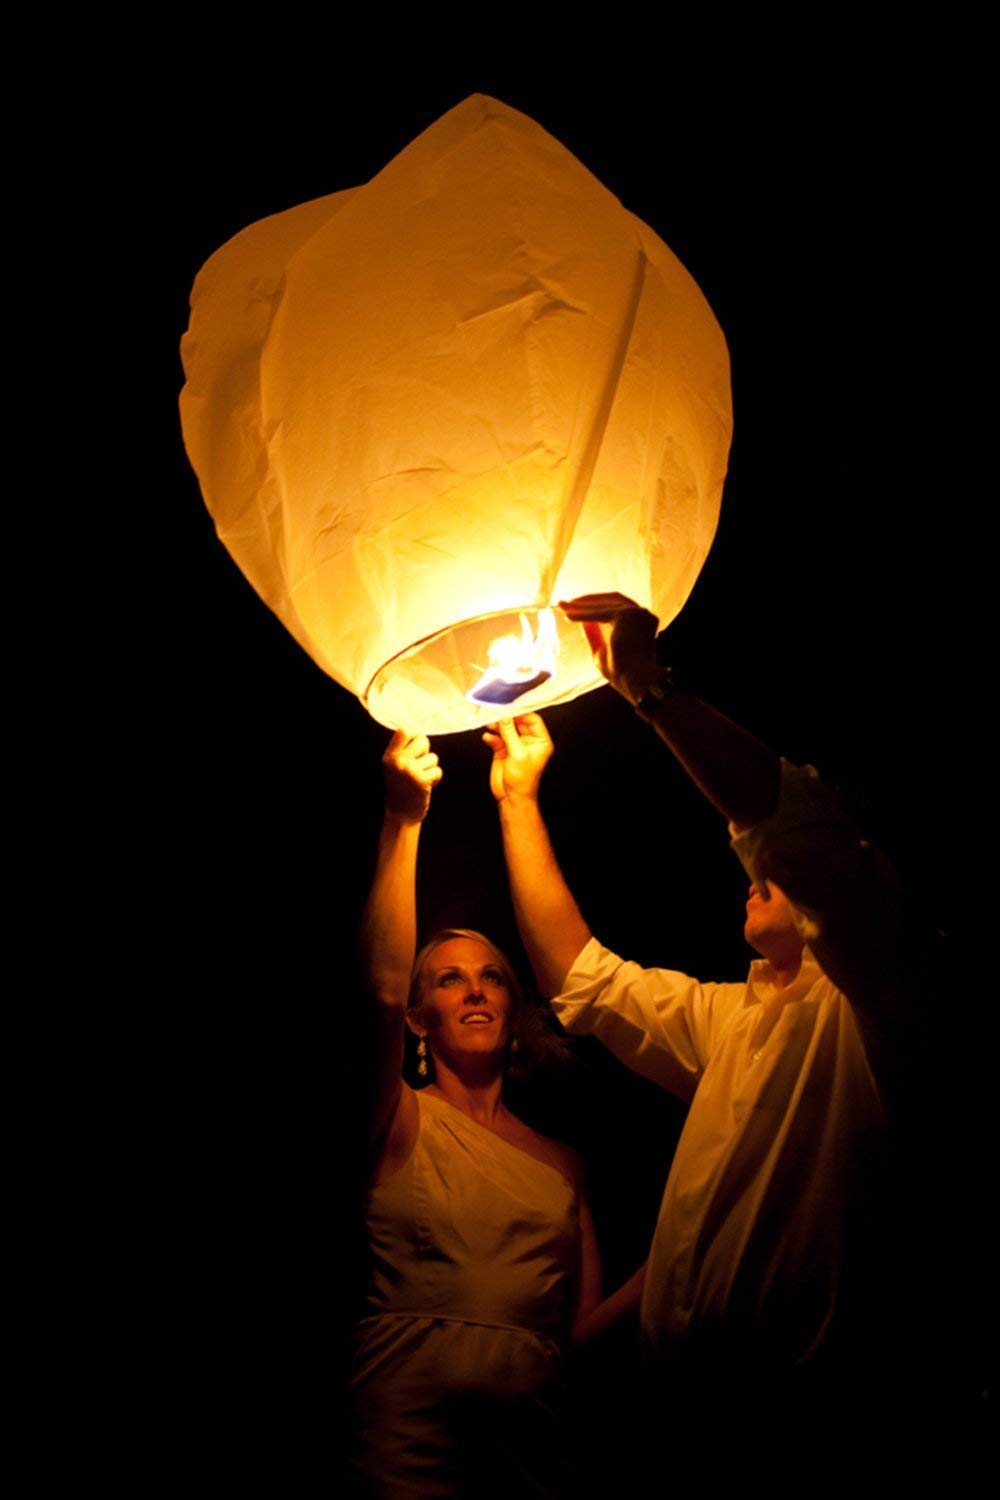 Chinese Paper Flying Sky Lanterns(10 Pack) - 100% Biodegradable, White Environmentally Friendly Lanterns for Wedding, Christmas, Memorial, Party etc (Diamond)